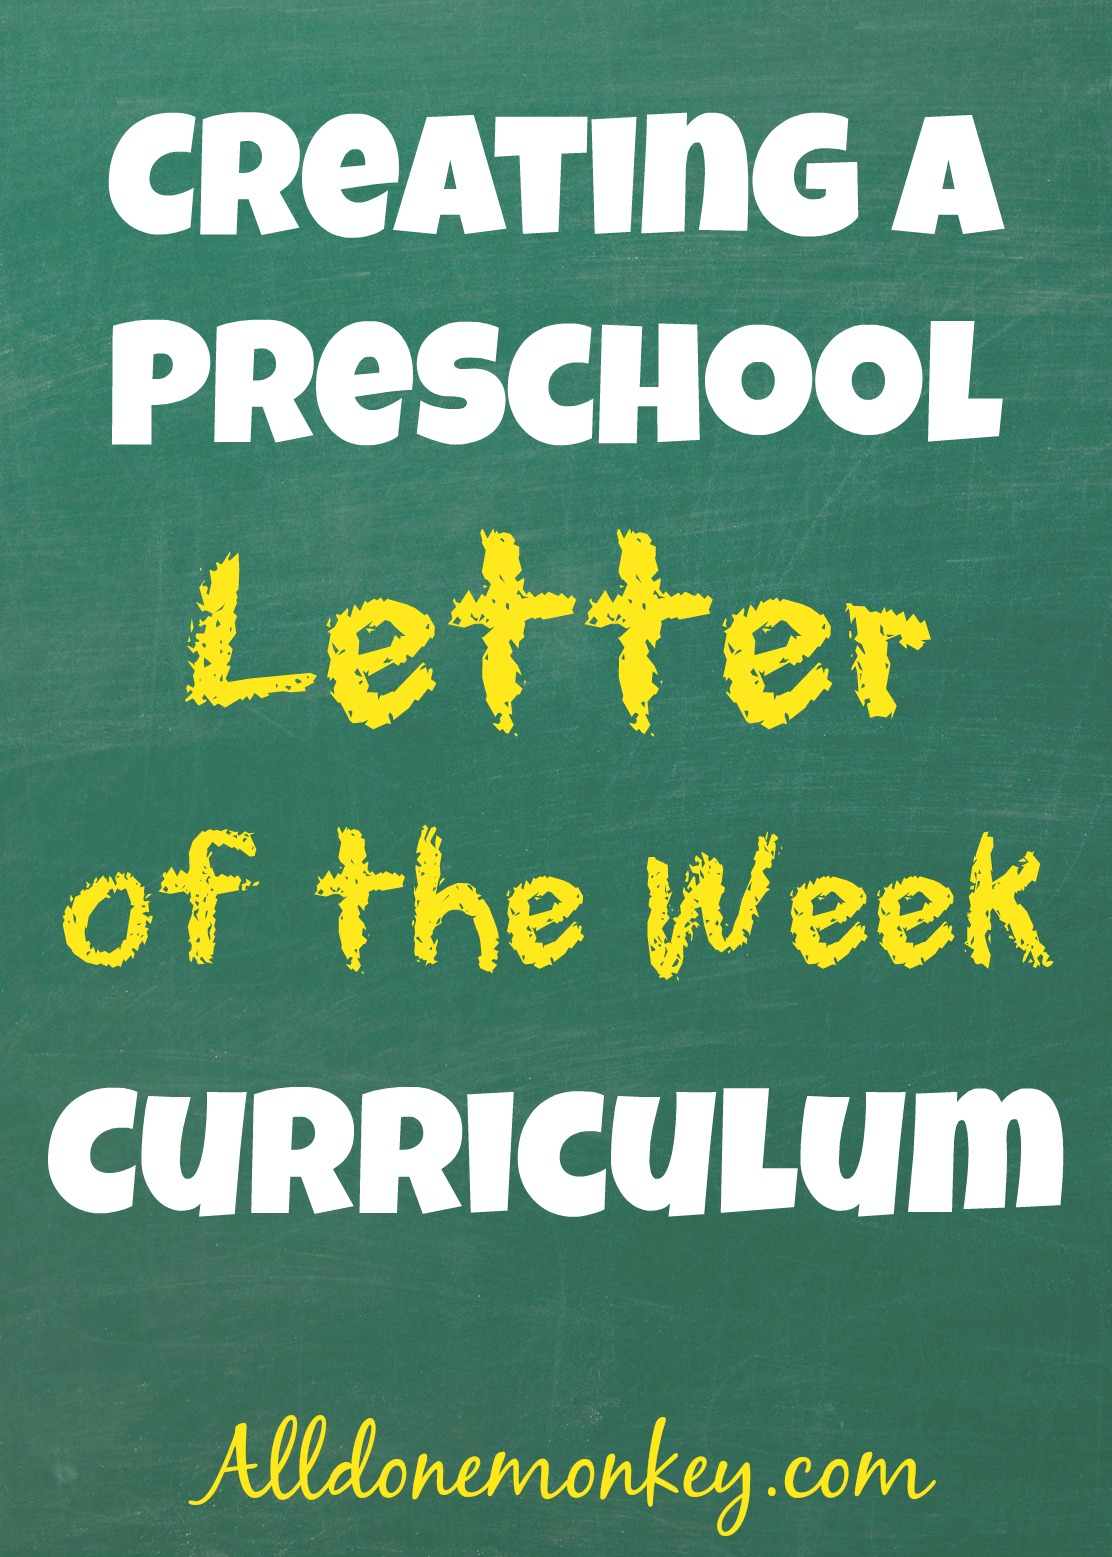 Creating a Letter of the Week Preschool Curriculum - All Done Monkey